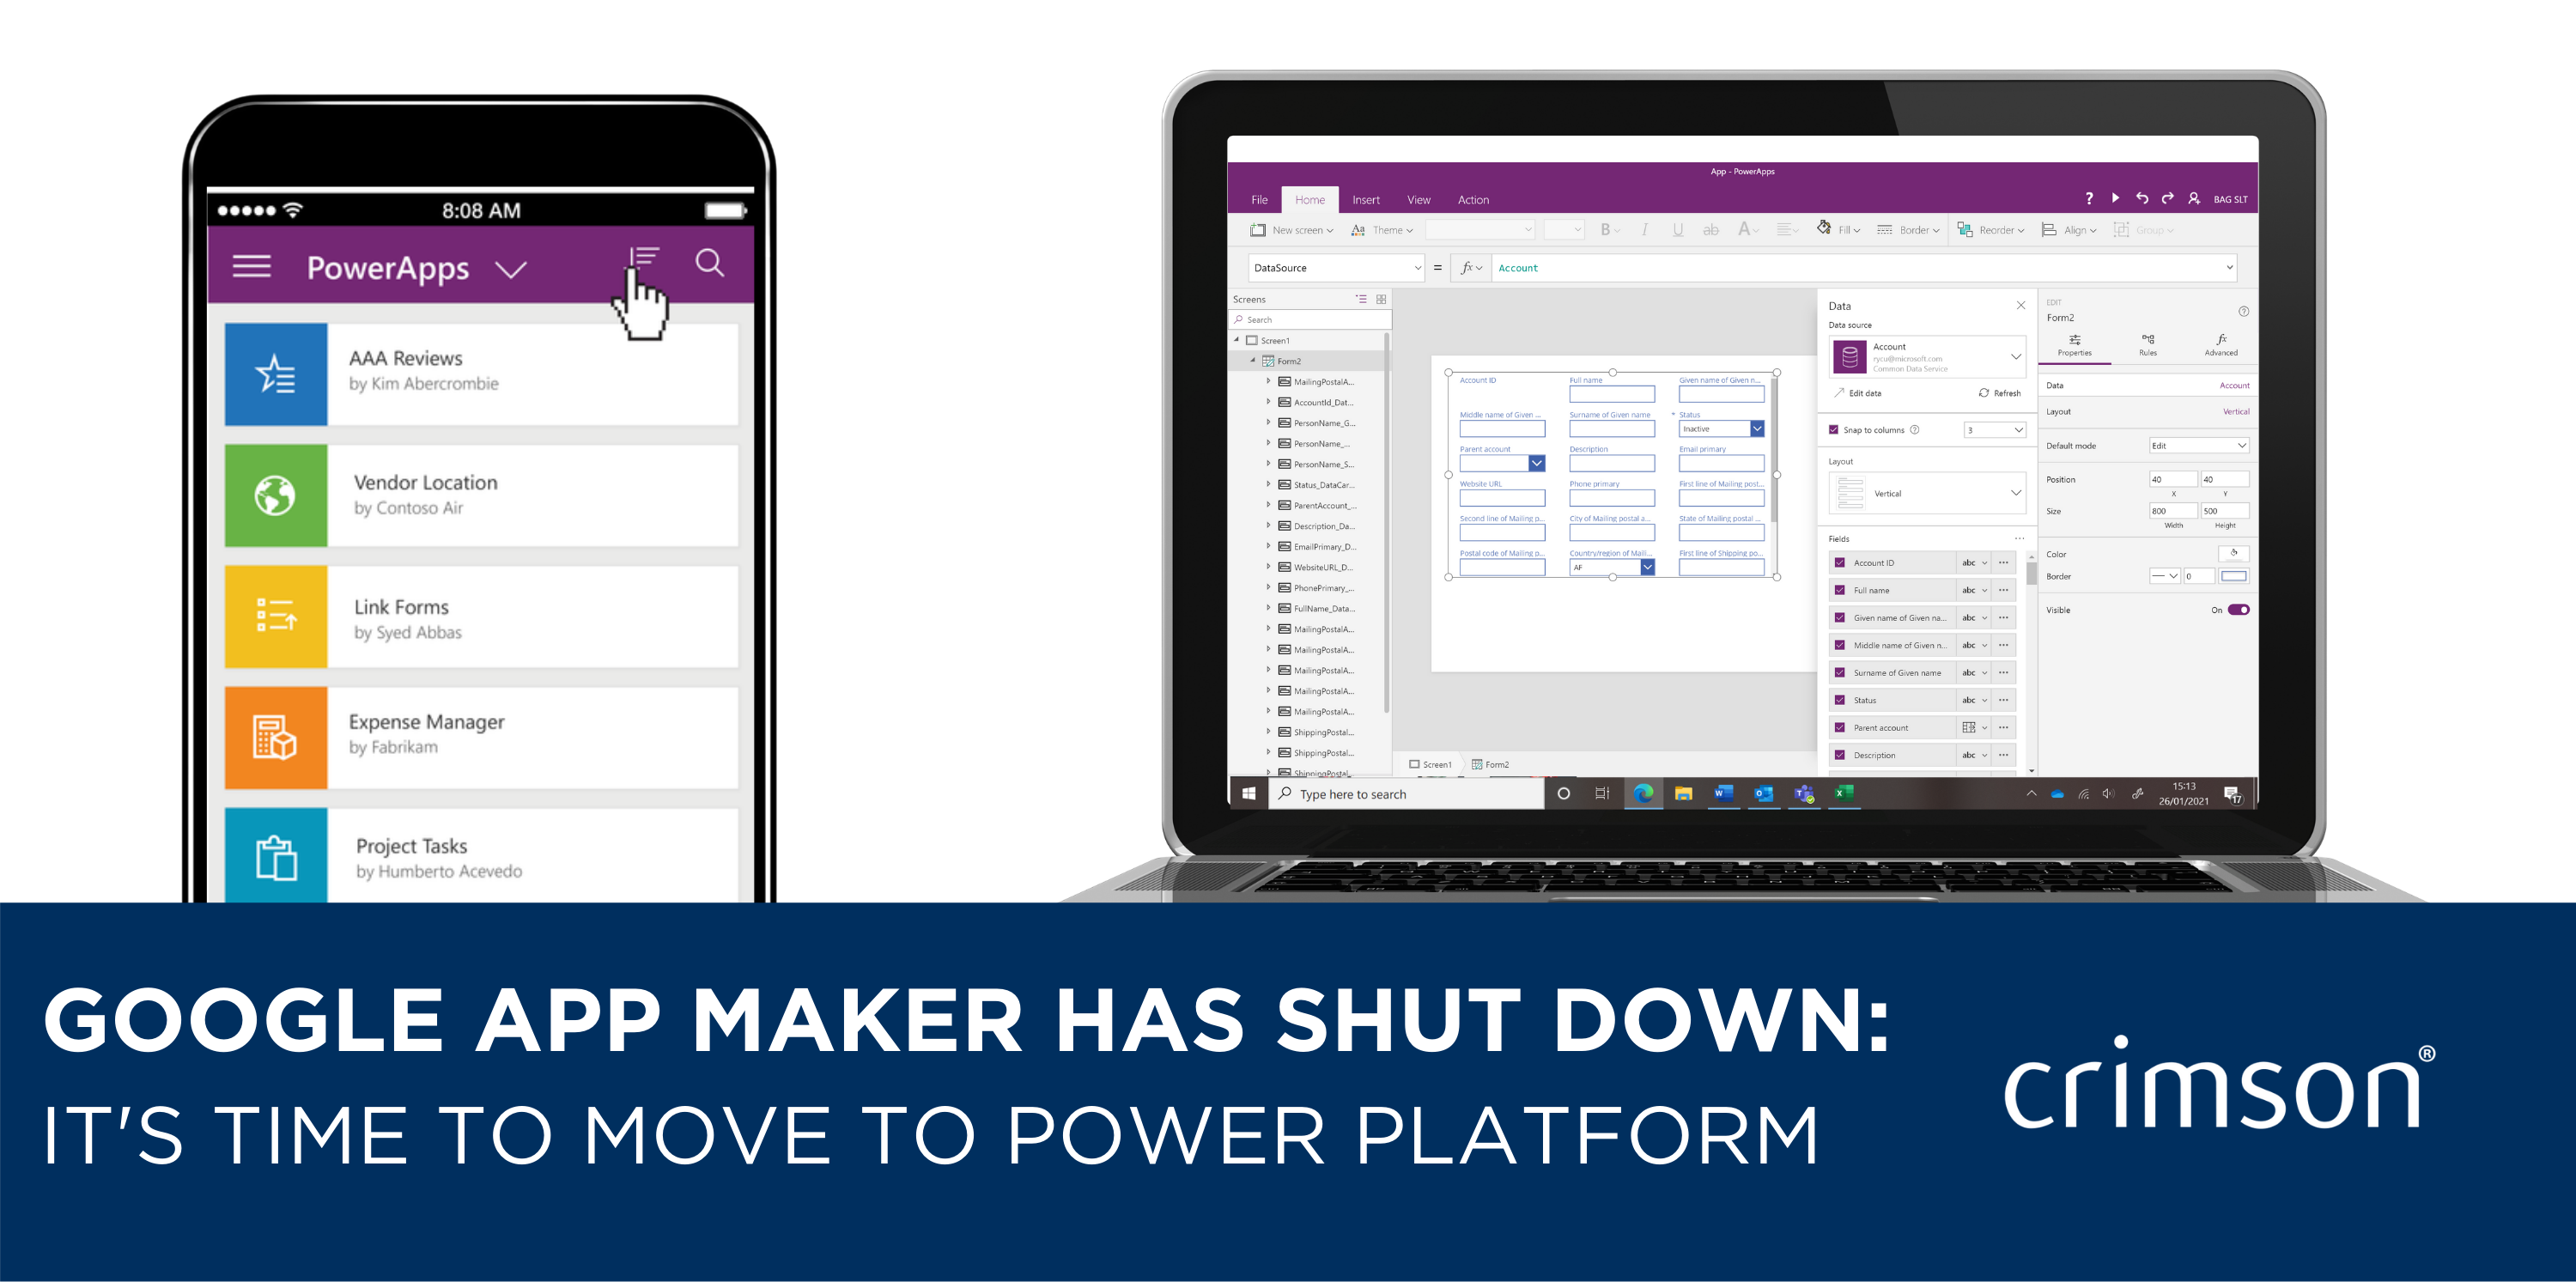 Google App Maker has shut down - choose Power Platform